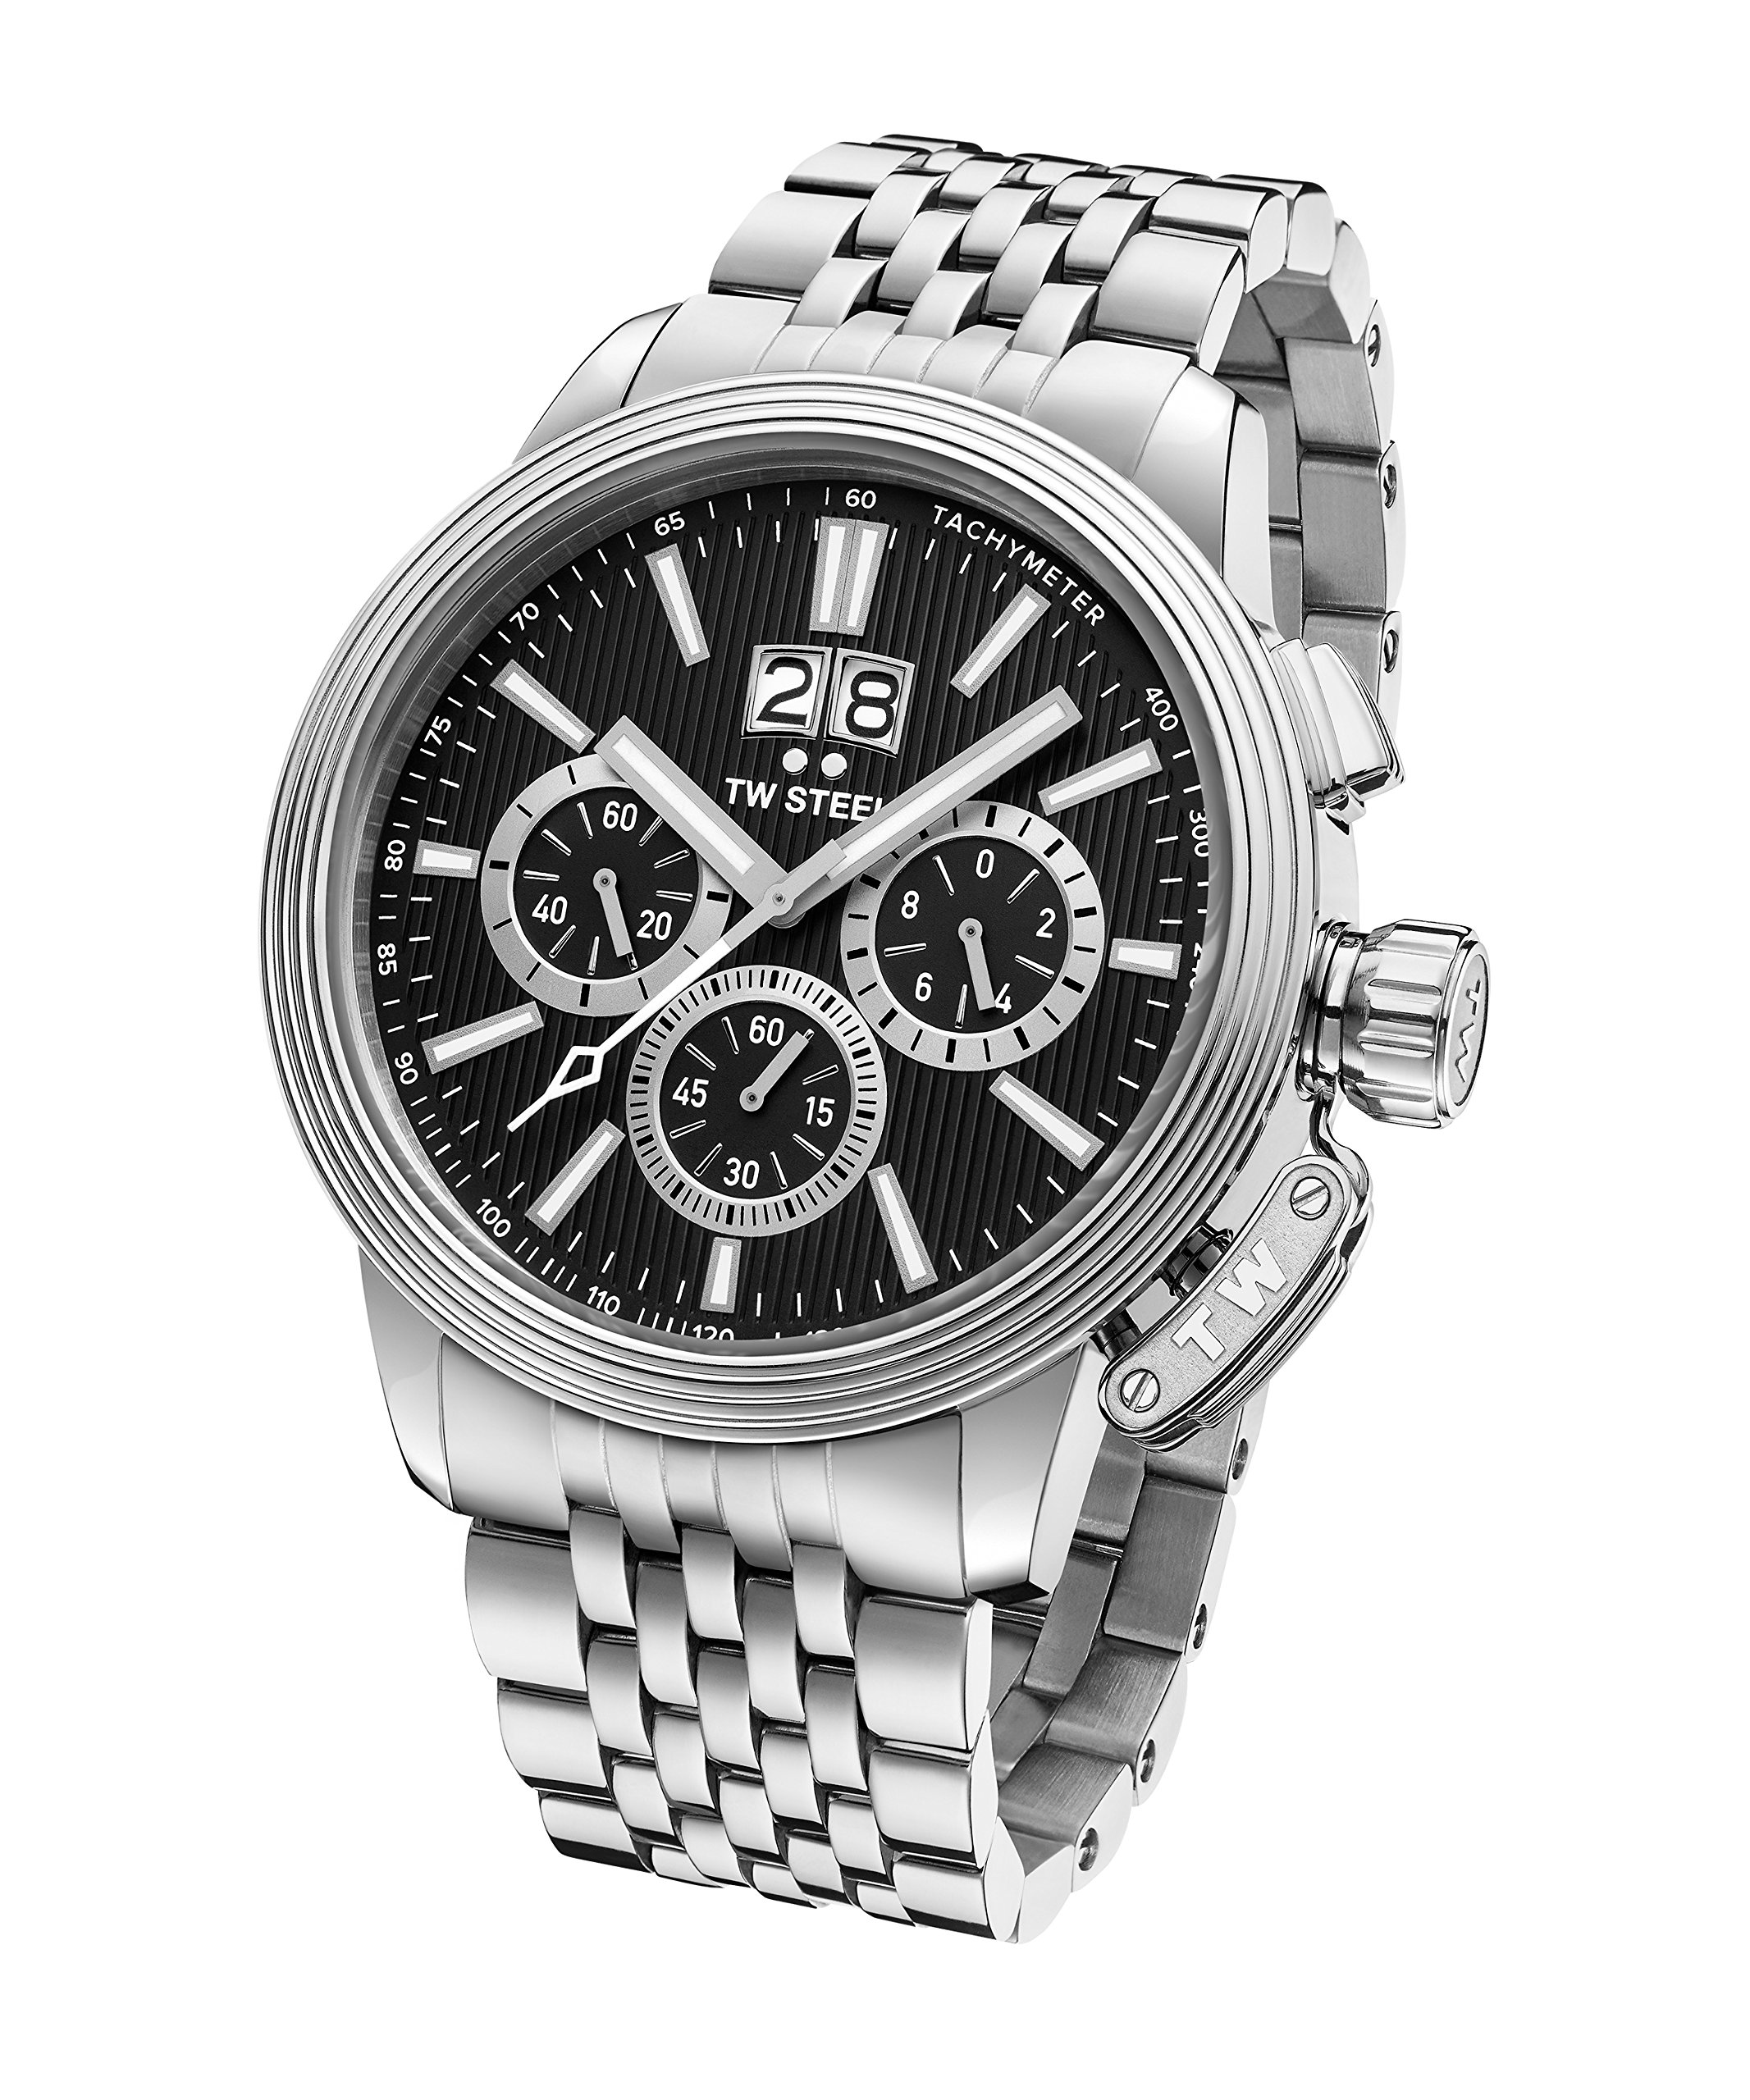 TW Steel CEO Adesso Japanese-Quartz Watch with Stainless-Steel Strap, Silver, 0.9 (Model: CE7020